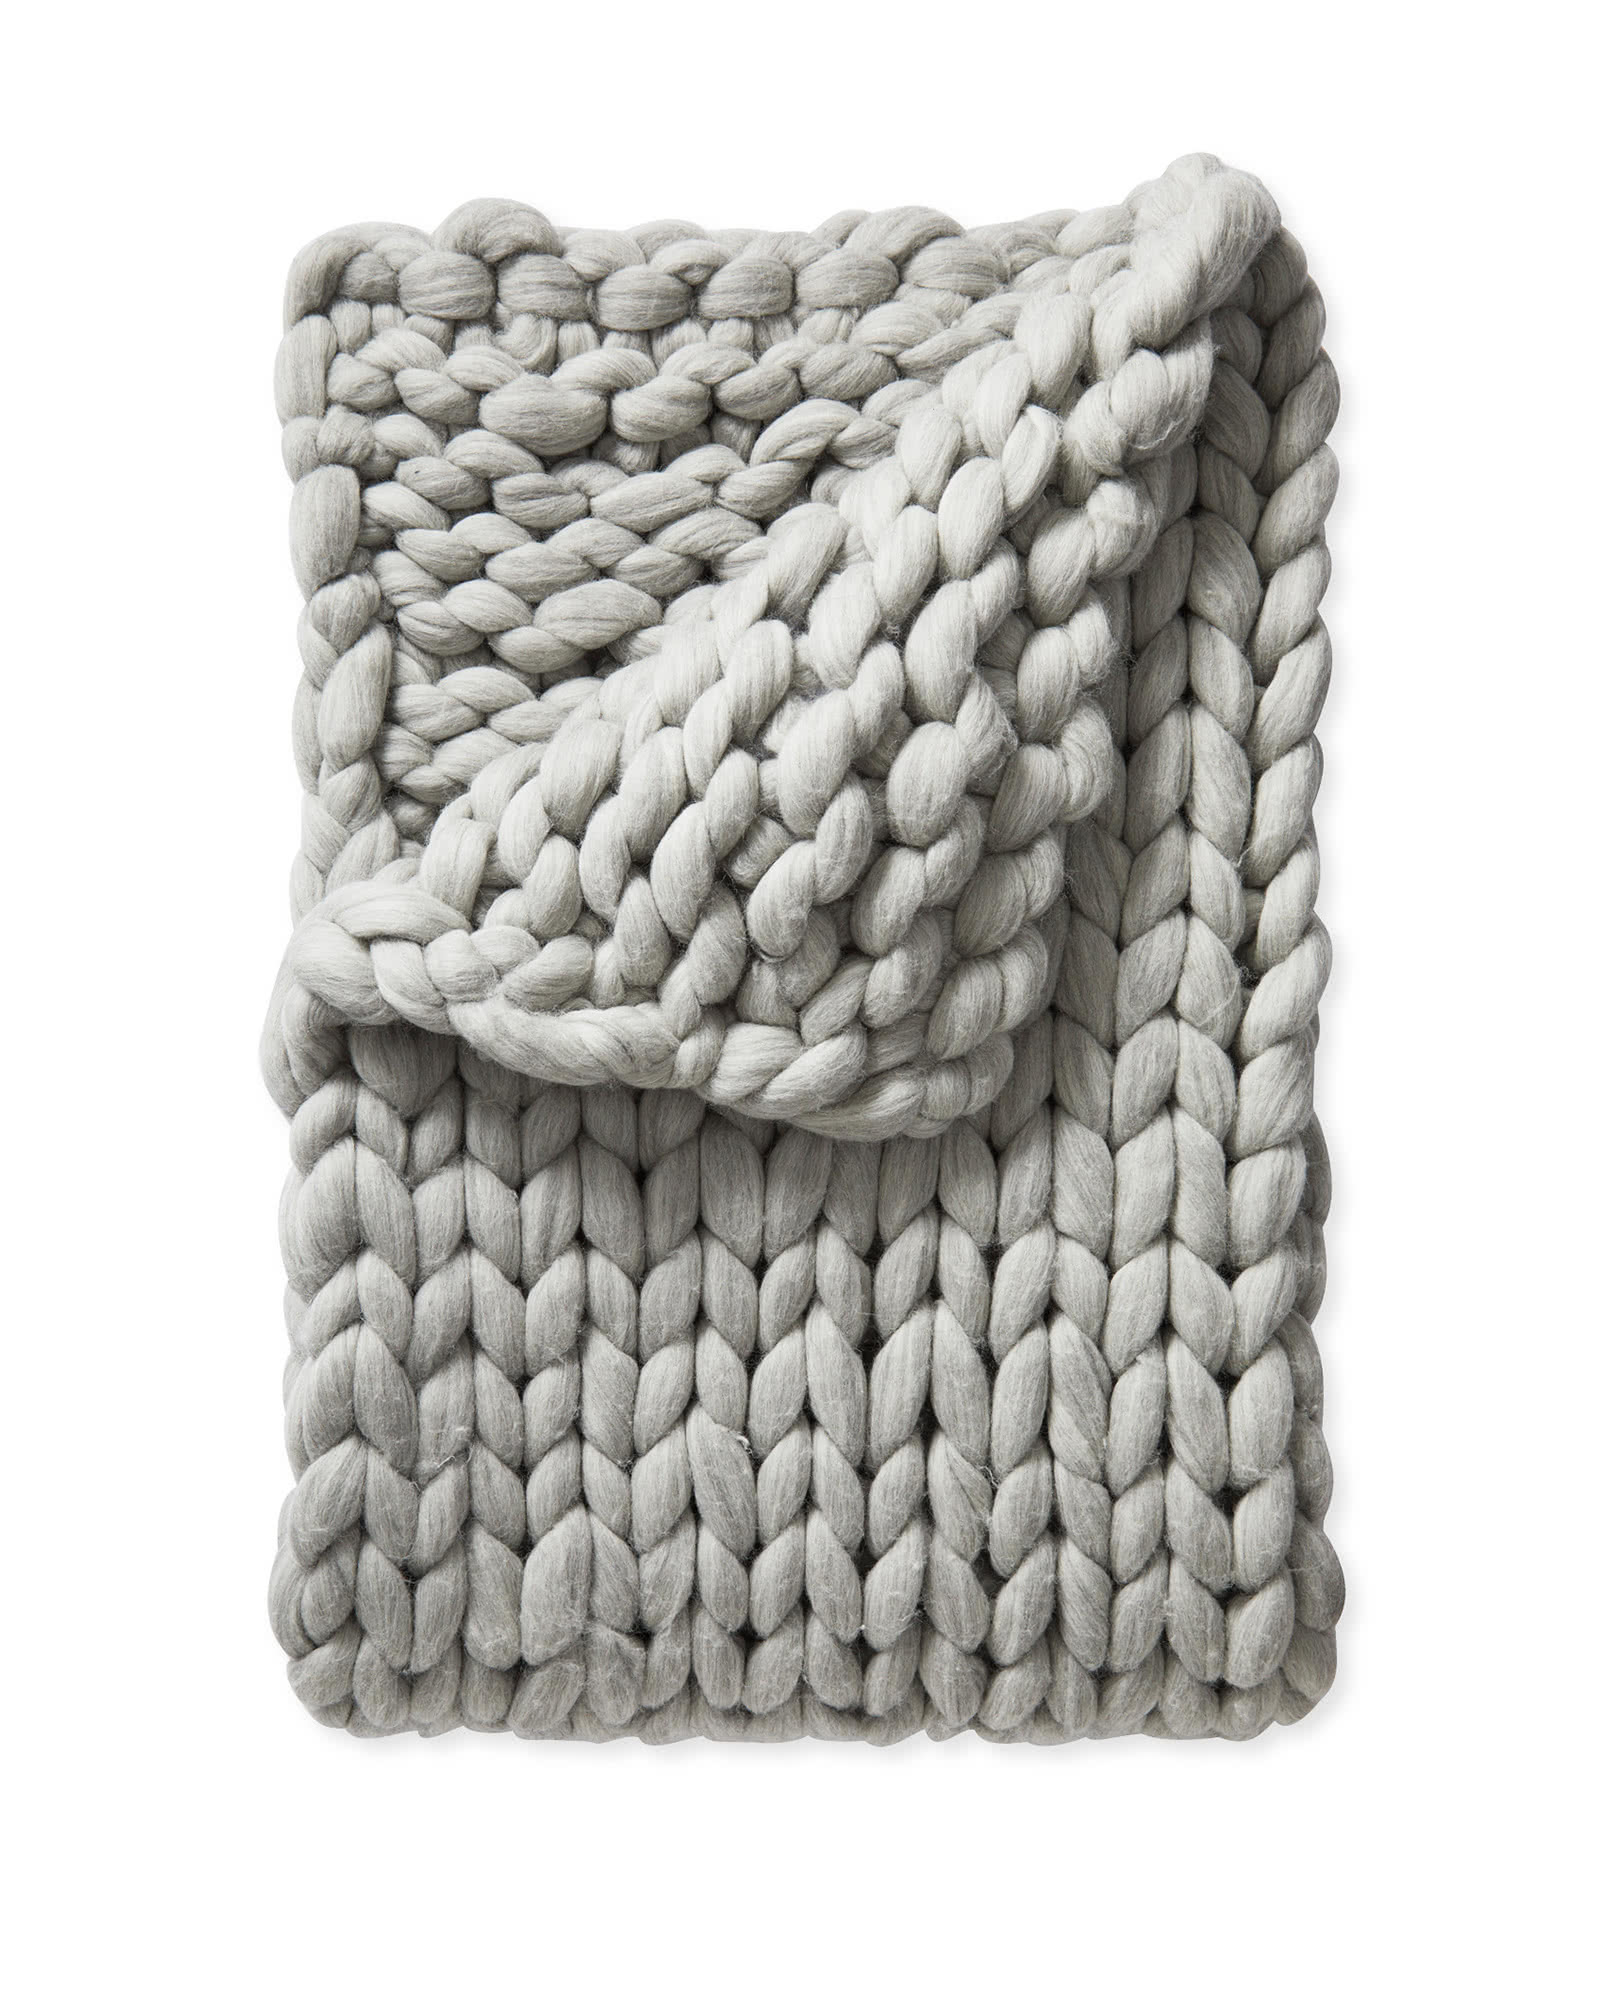 Henley Wool Throw, Heathered Grey